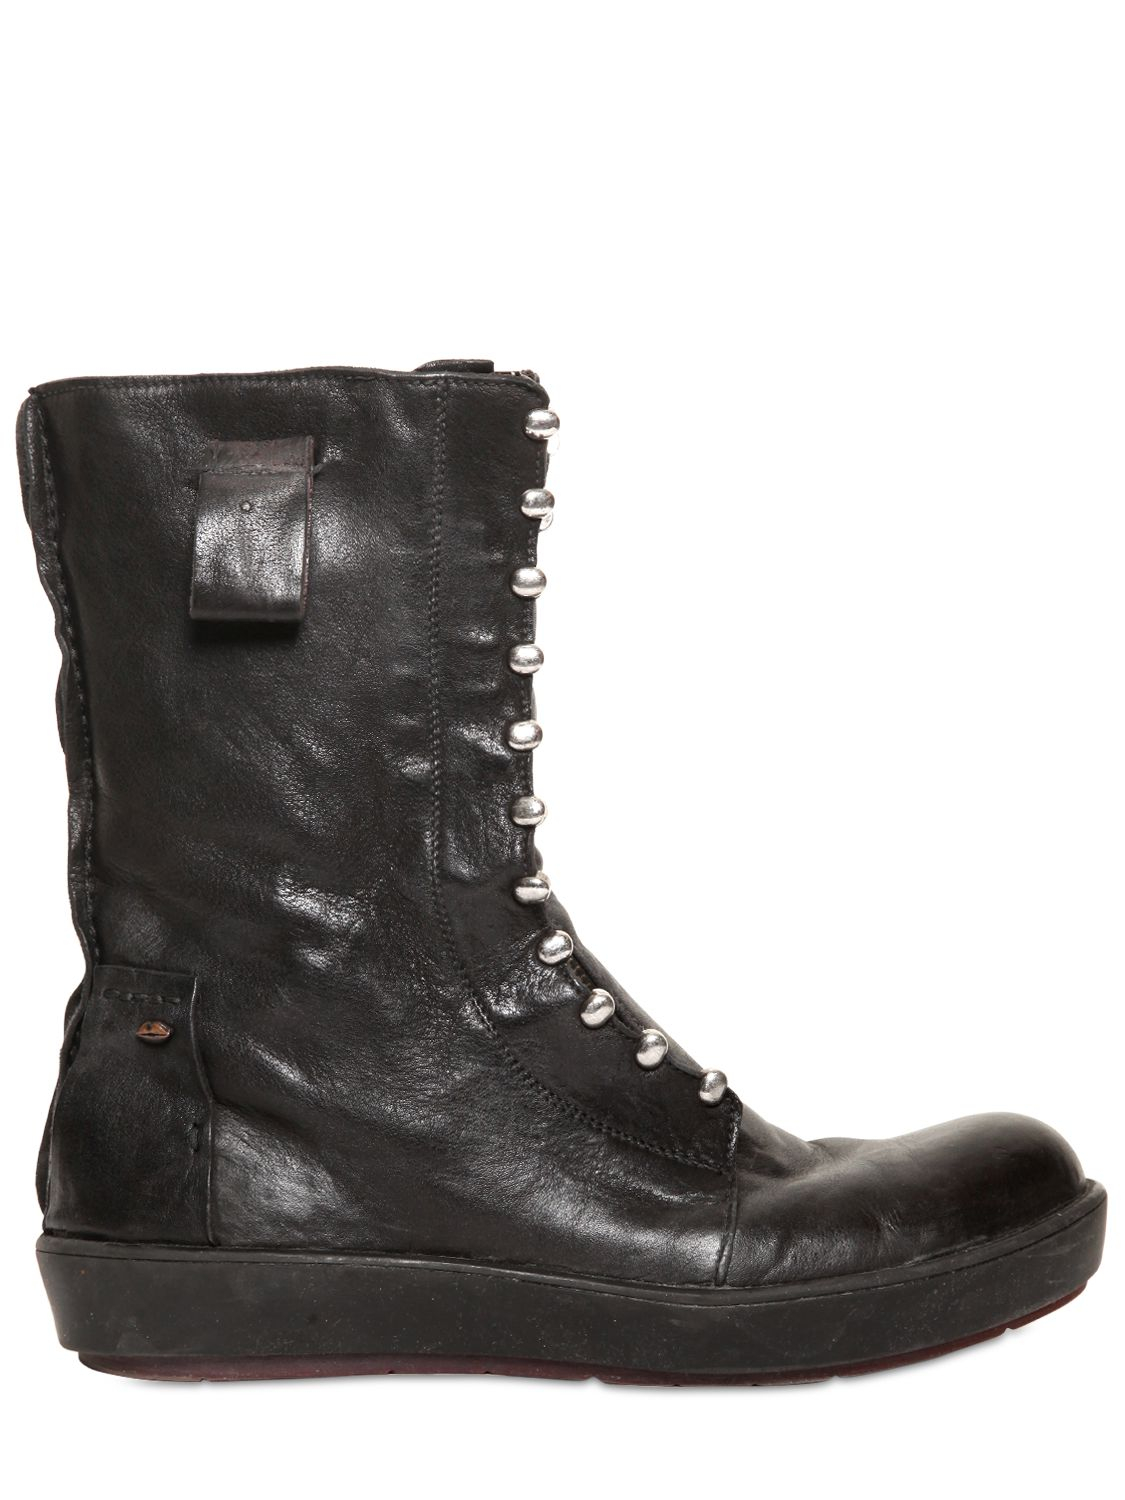 tom rebl vintage leather boots in black lyst